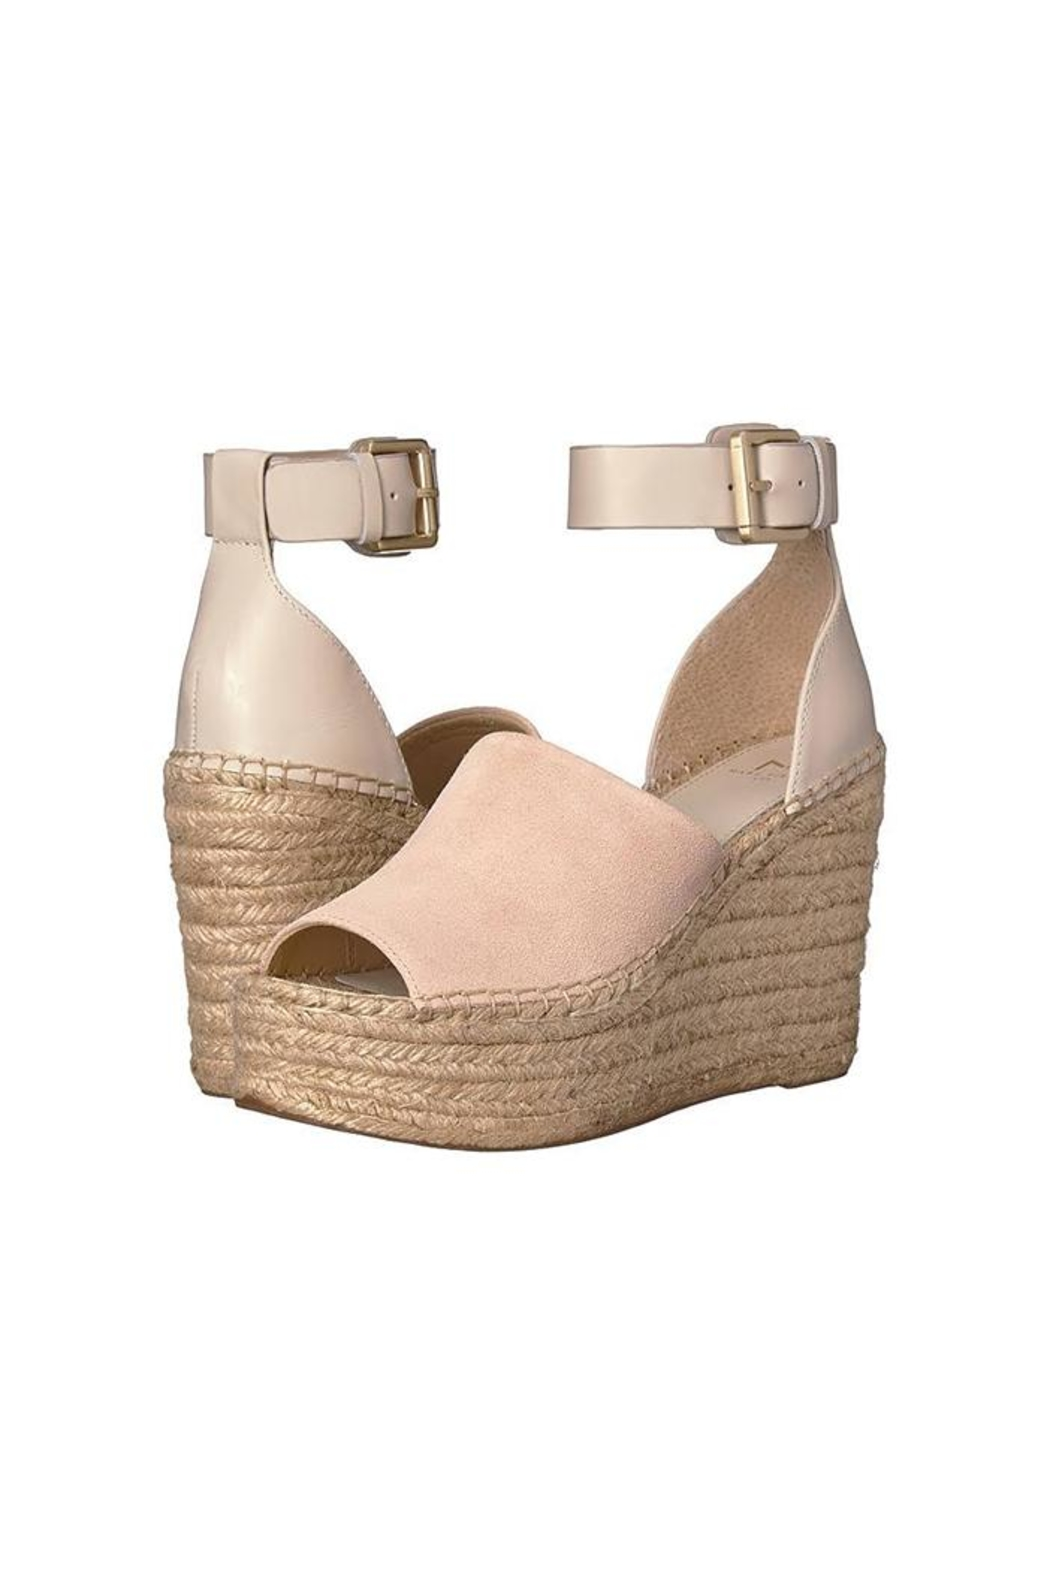 Marc Fisher LTD Adalyn Suede Wedge - Main Image